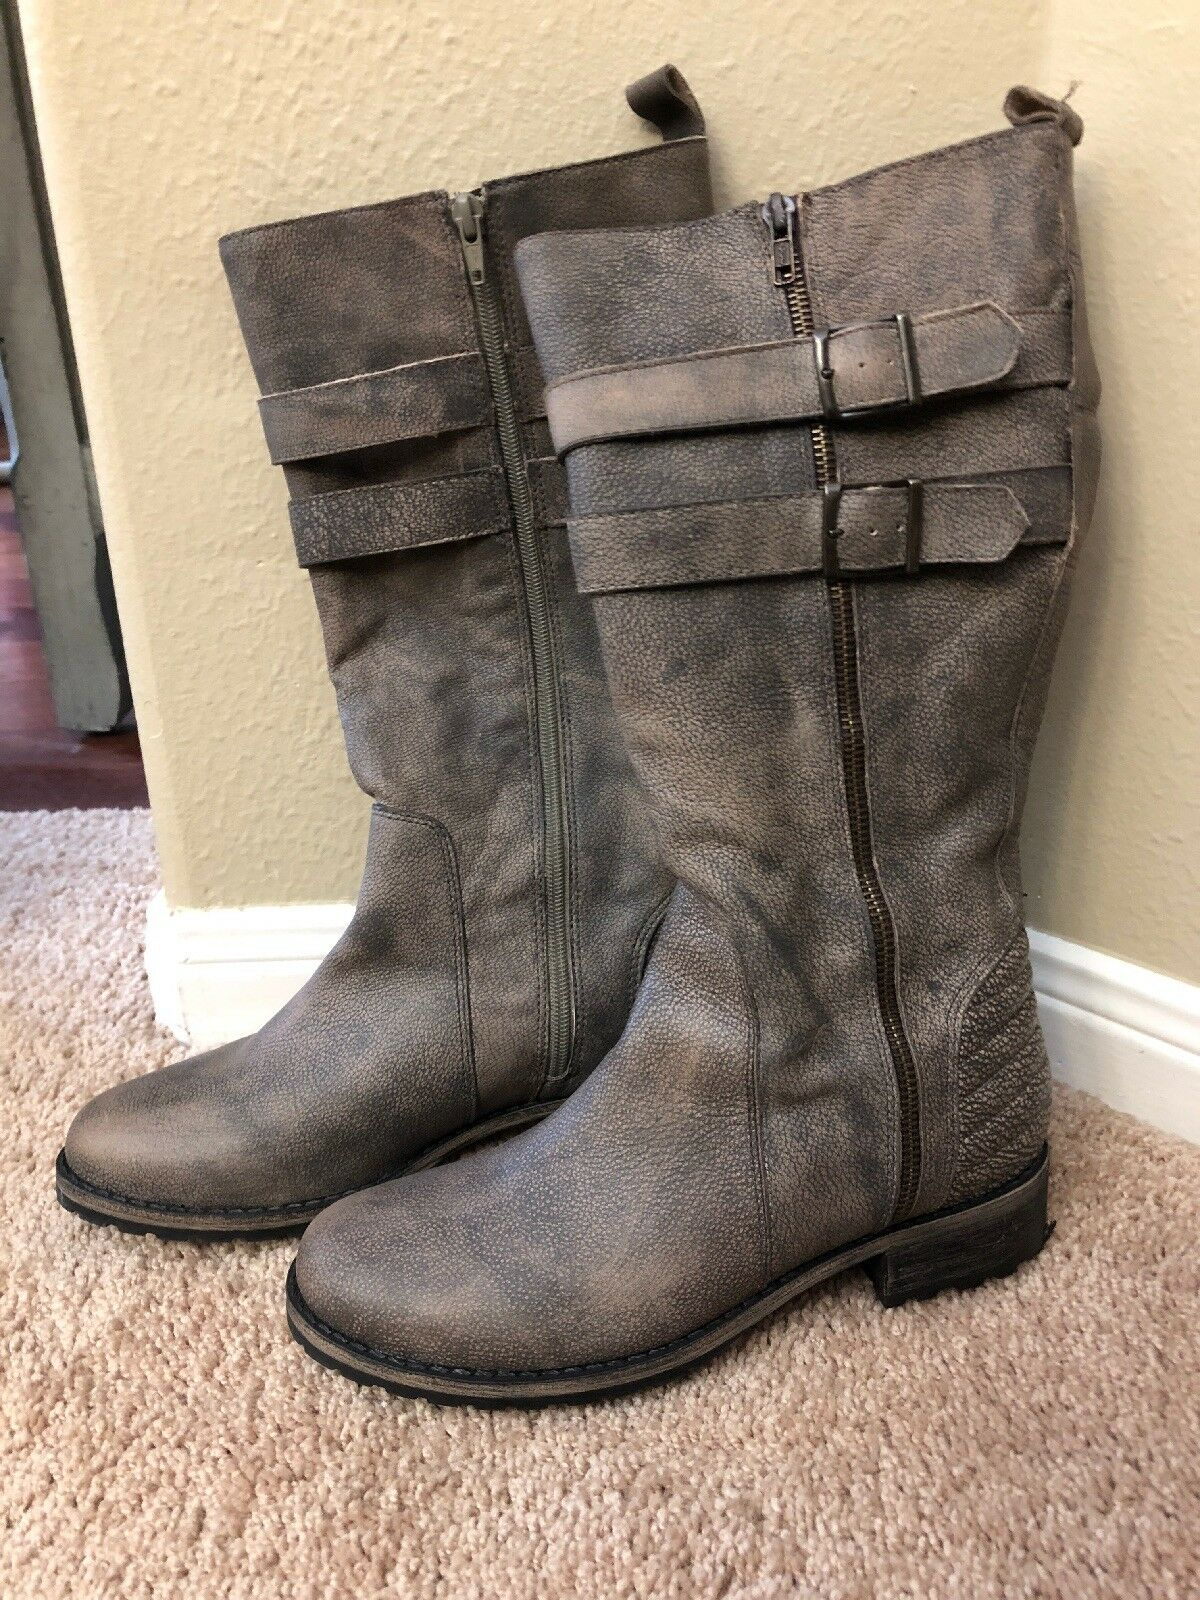 Matisse Roady Moto Riding Women US 9 Brown Knee High Boot Festival Clothing